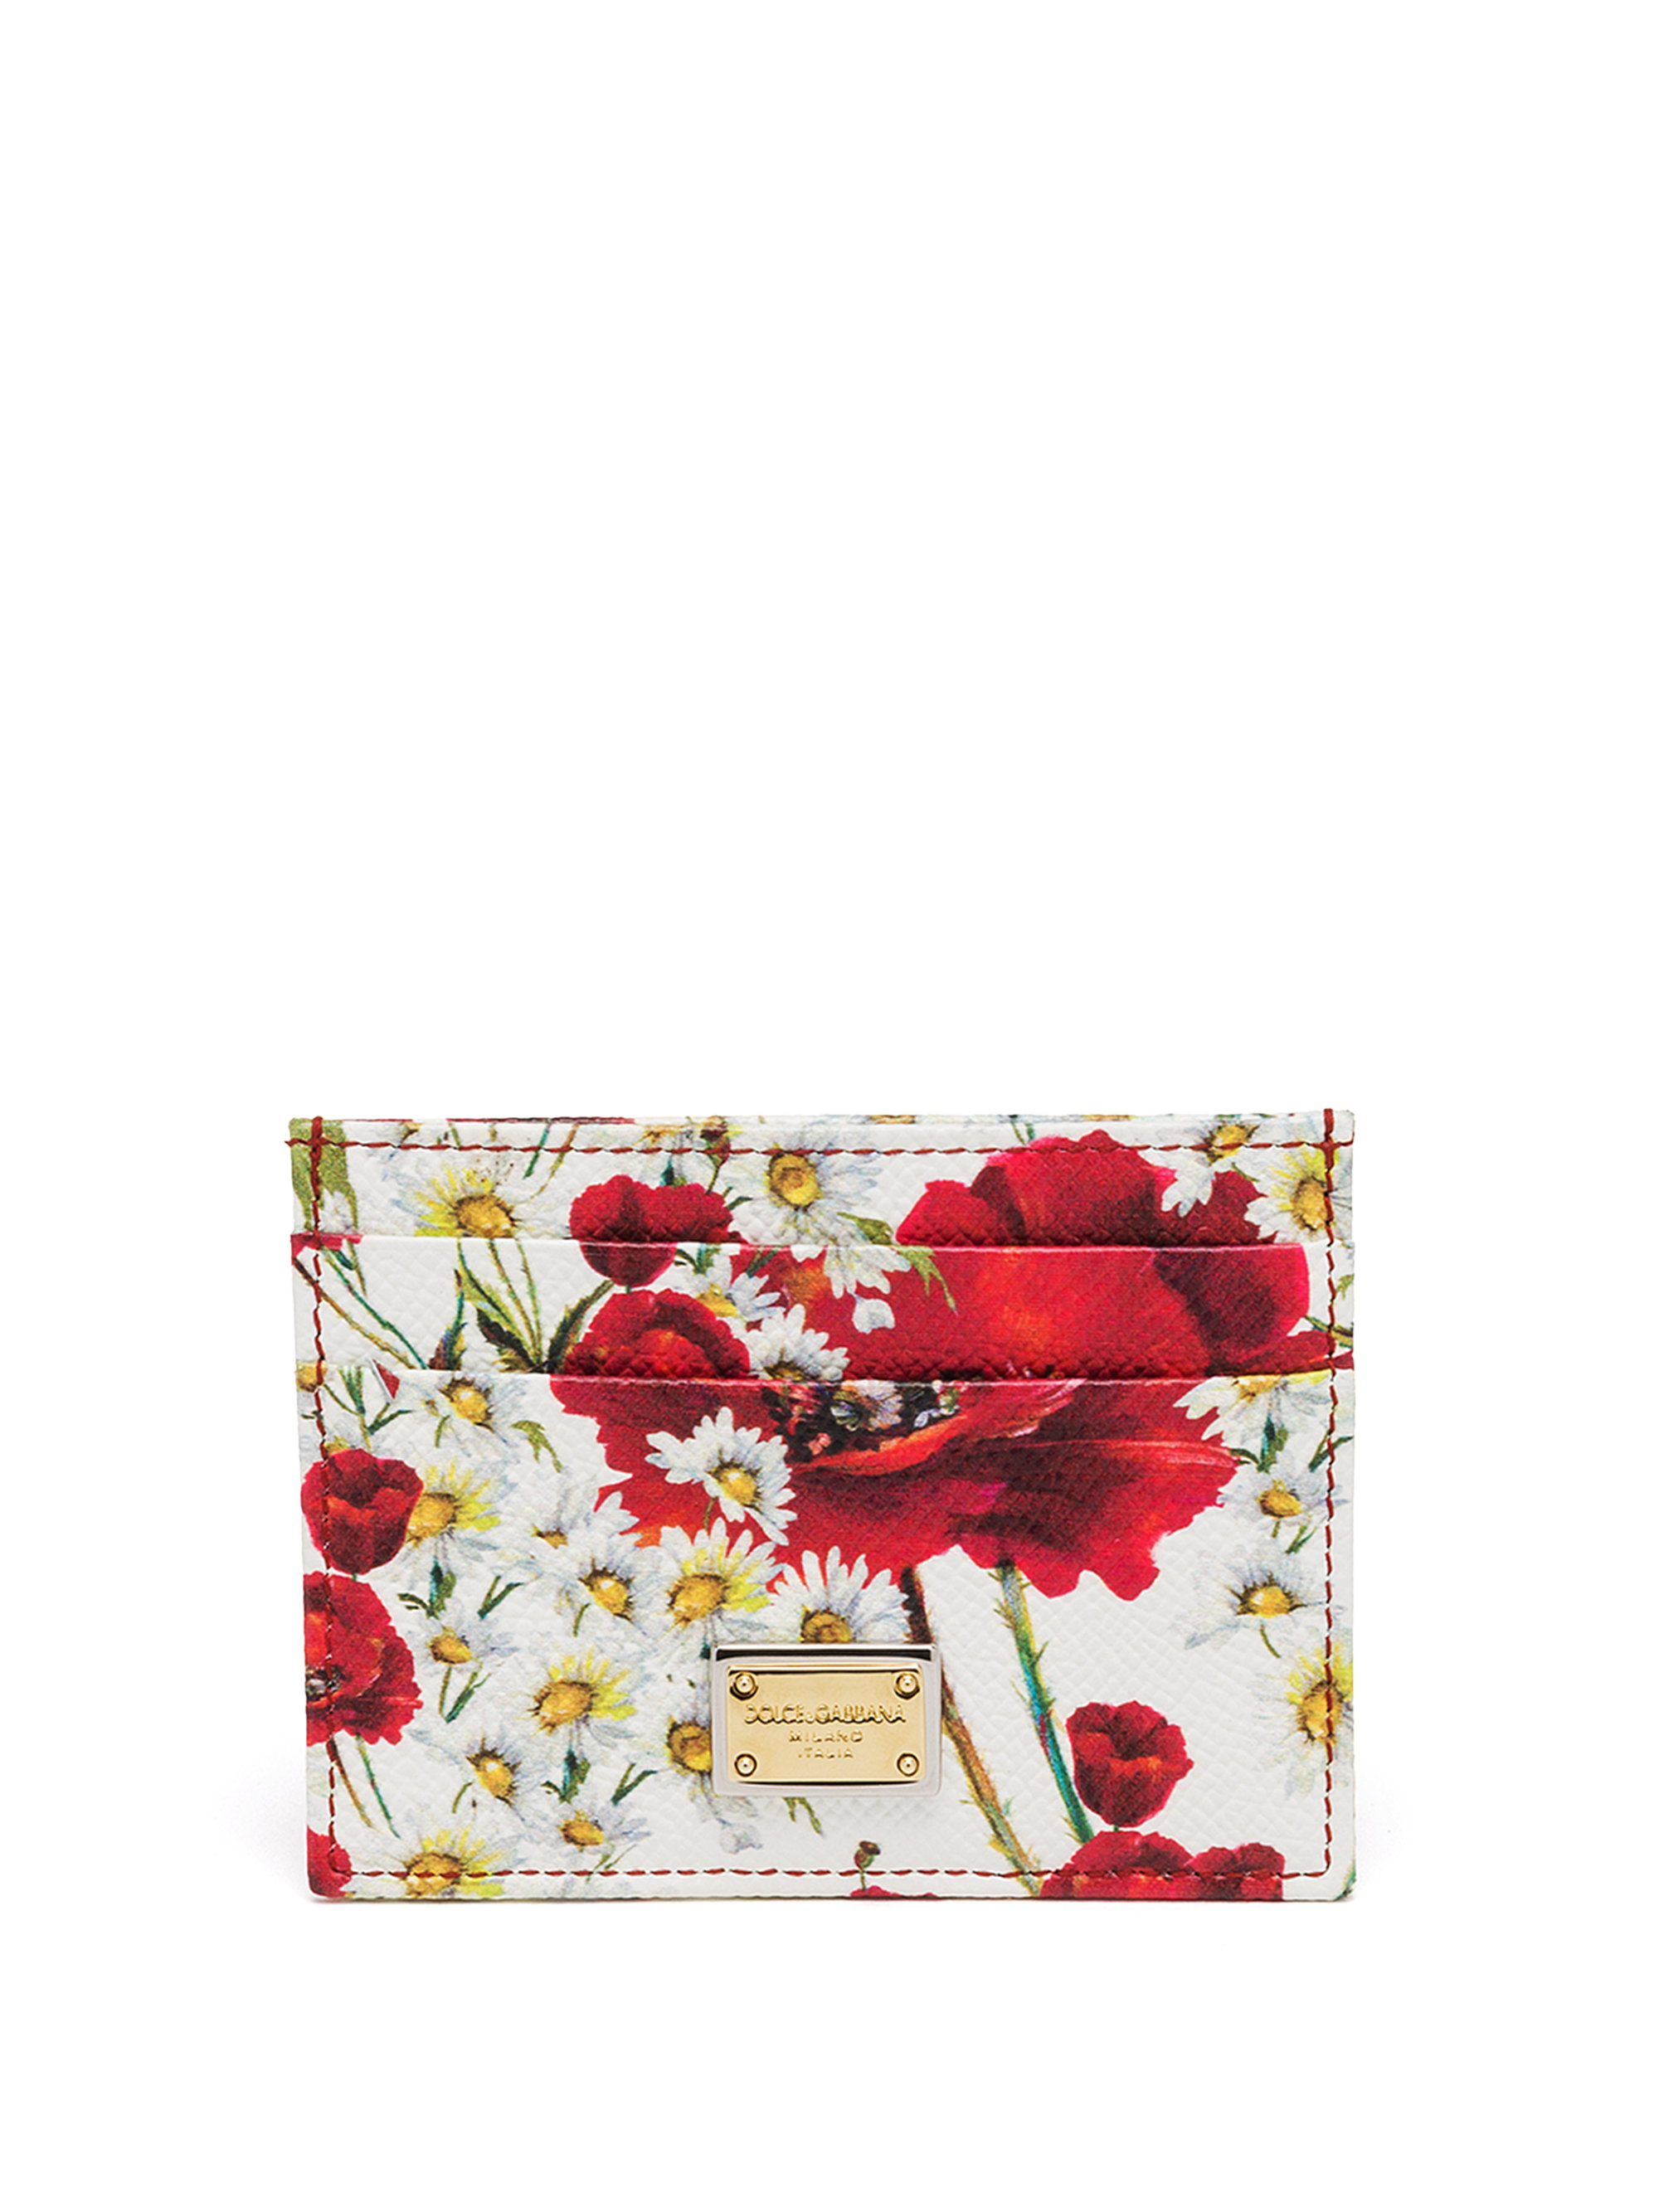 Rose-print leather cardholder Dolce & Gabbana kALKaS